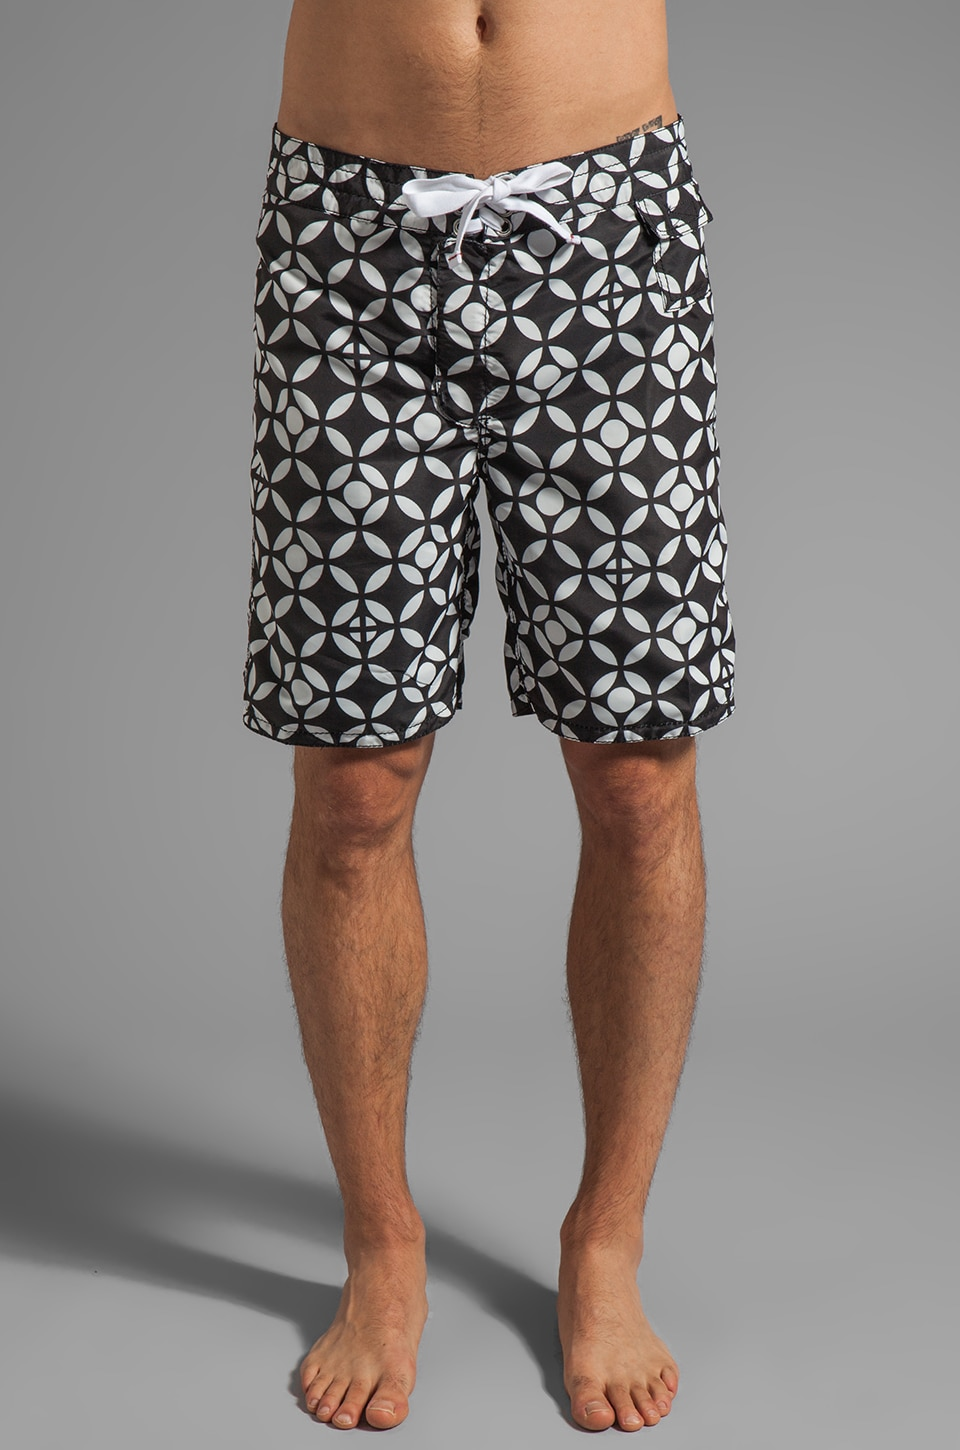 Howe Poolside Reversible Board Shorts in Black